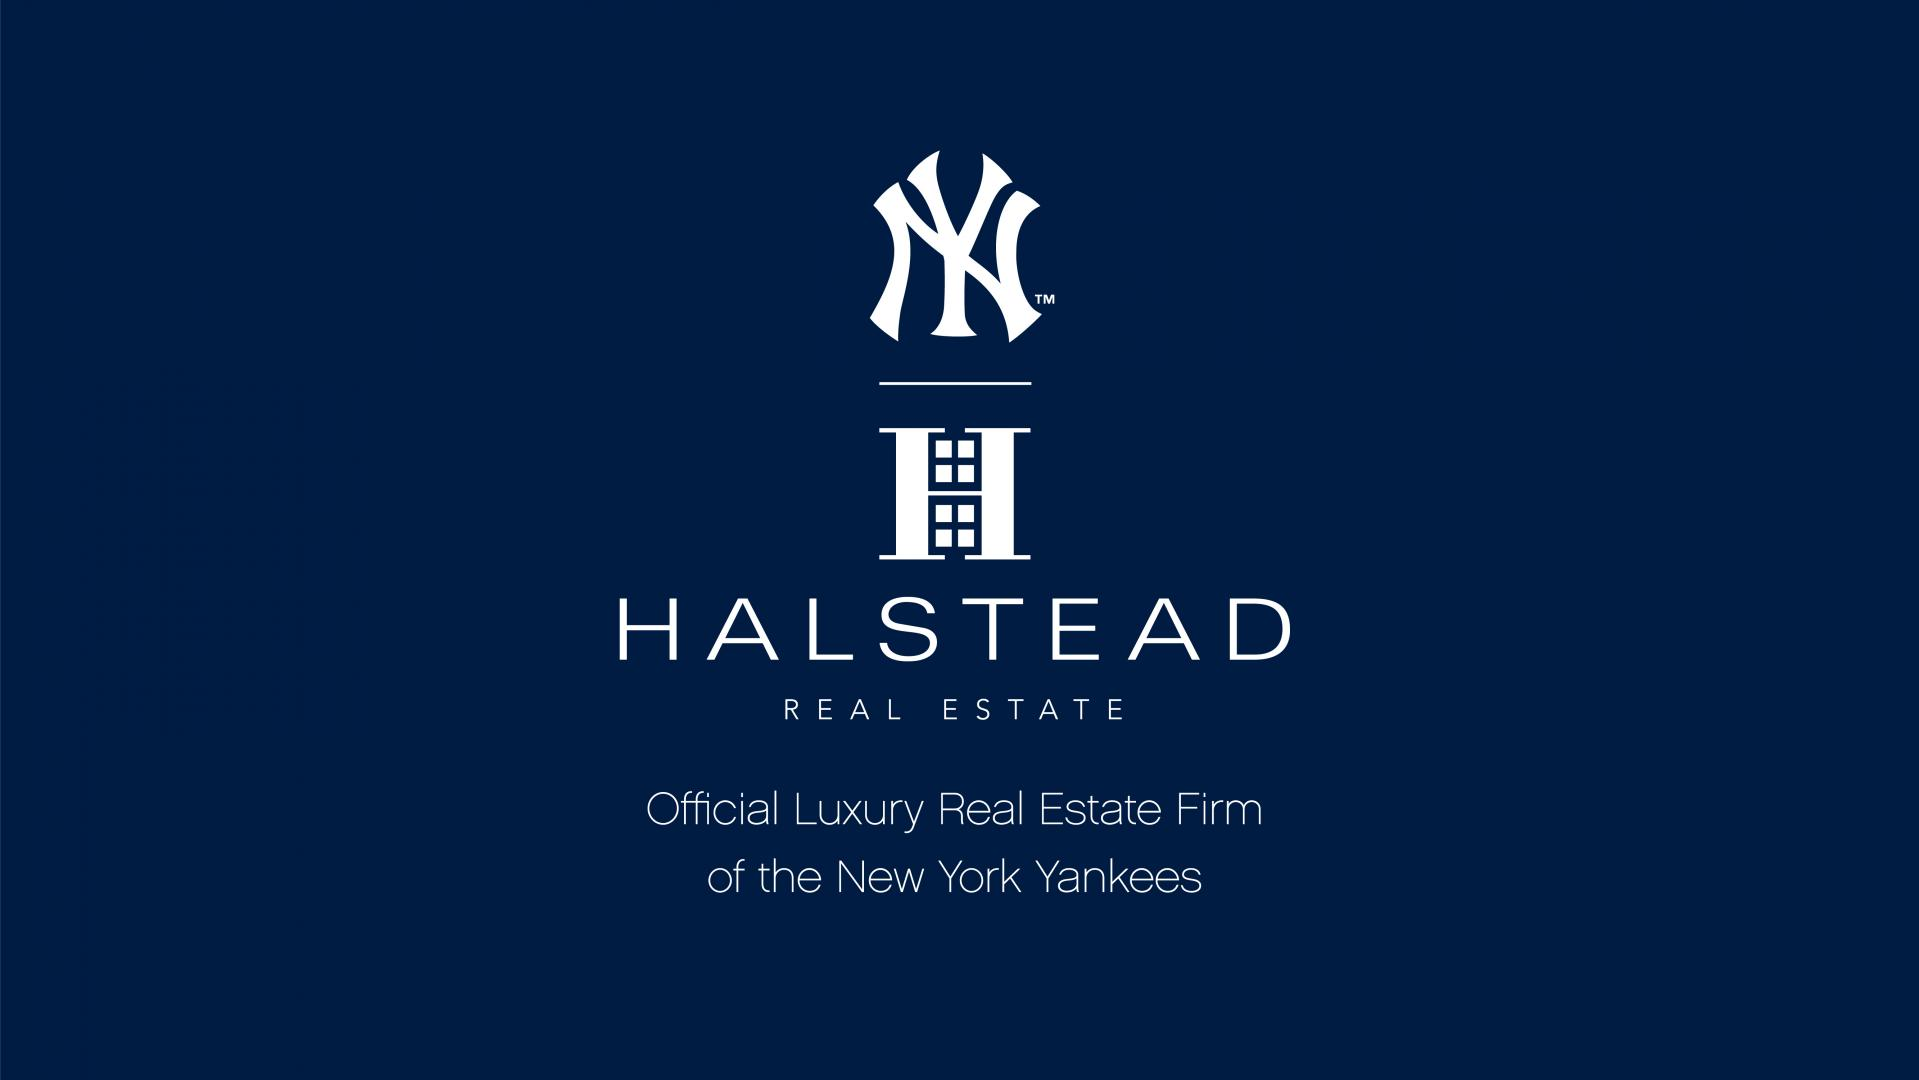 Johnny Damon Makes Yankees Announcement at Halstead Annual